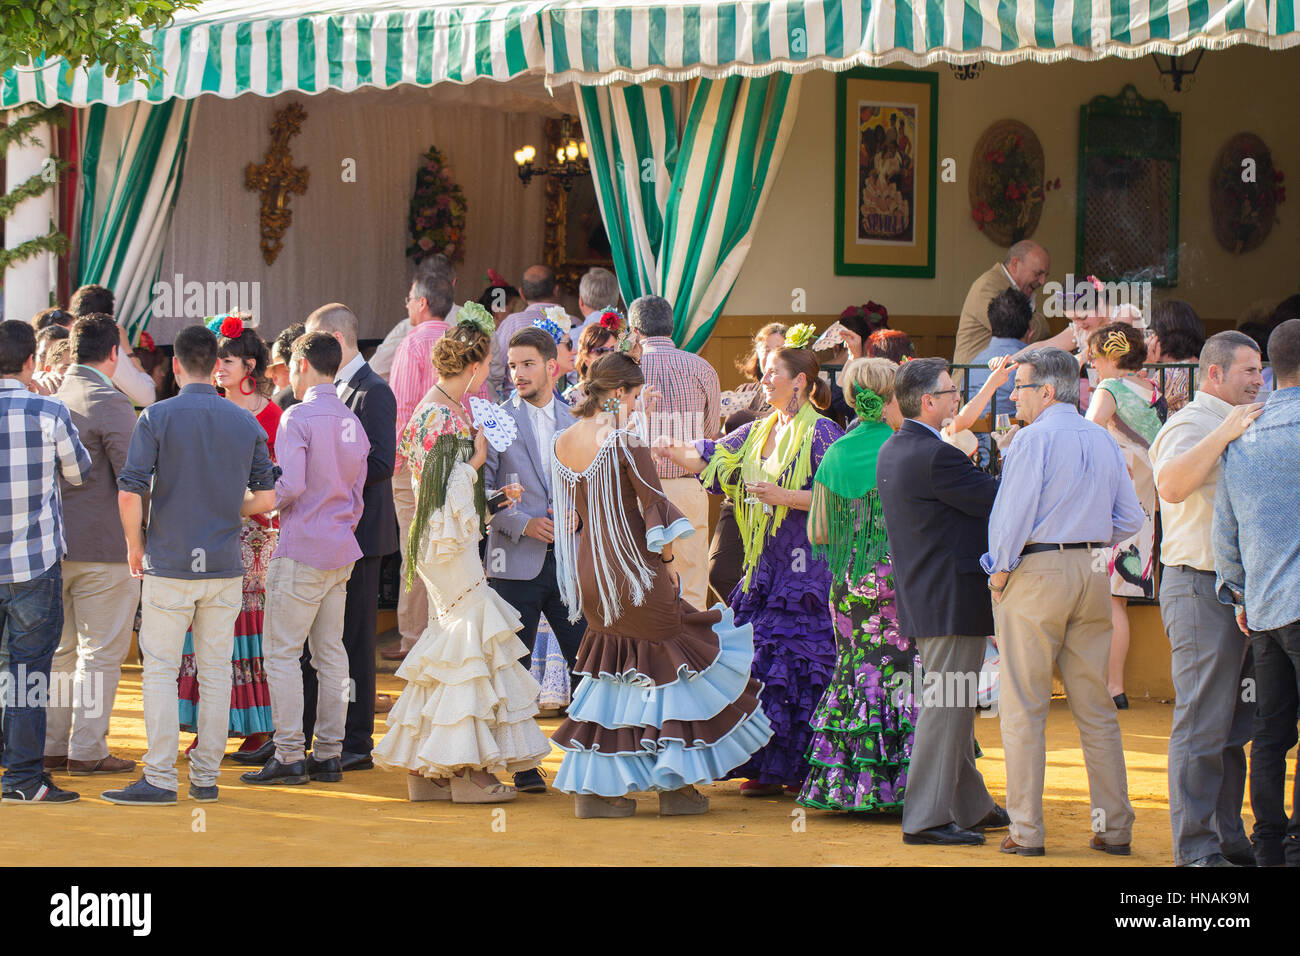 SEVILLE, SPAIN - APR, 25: people dressed in traditional spanish costumes dancing and celebrating the Seville's - Stock Image